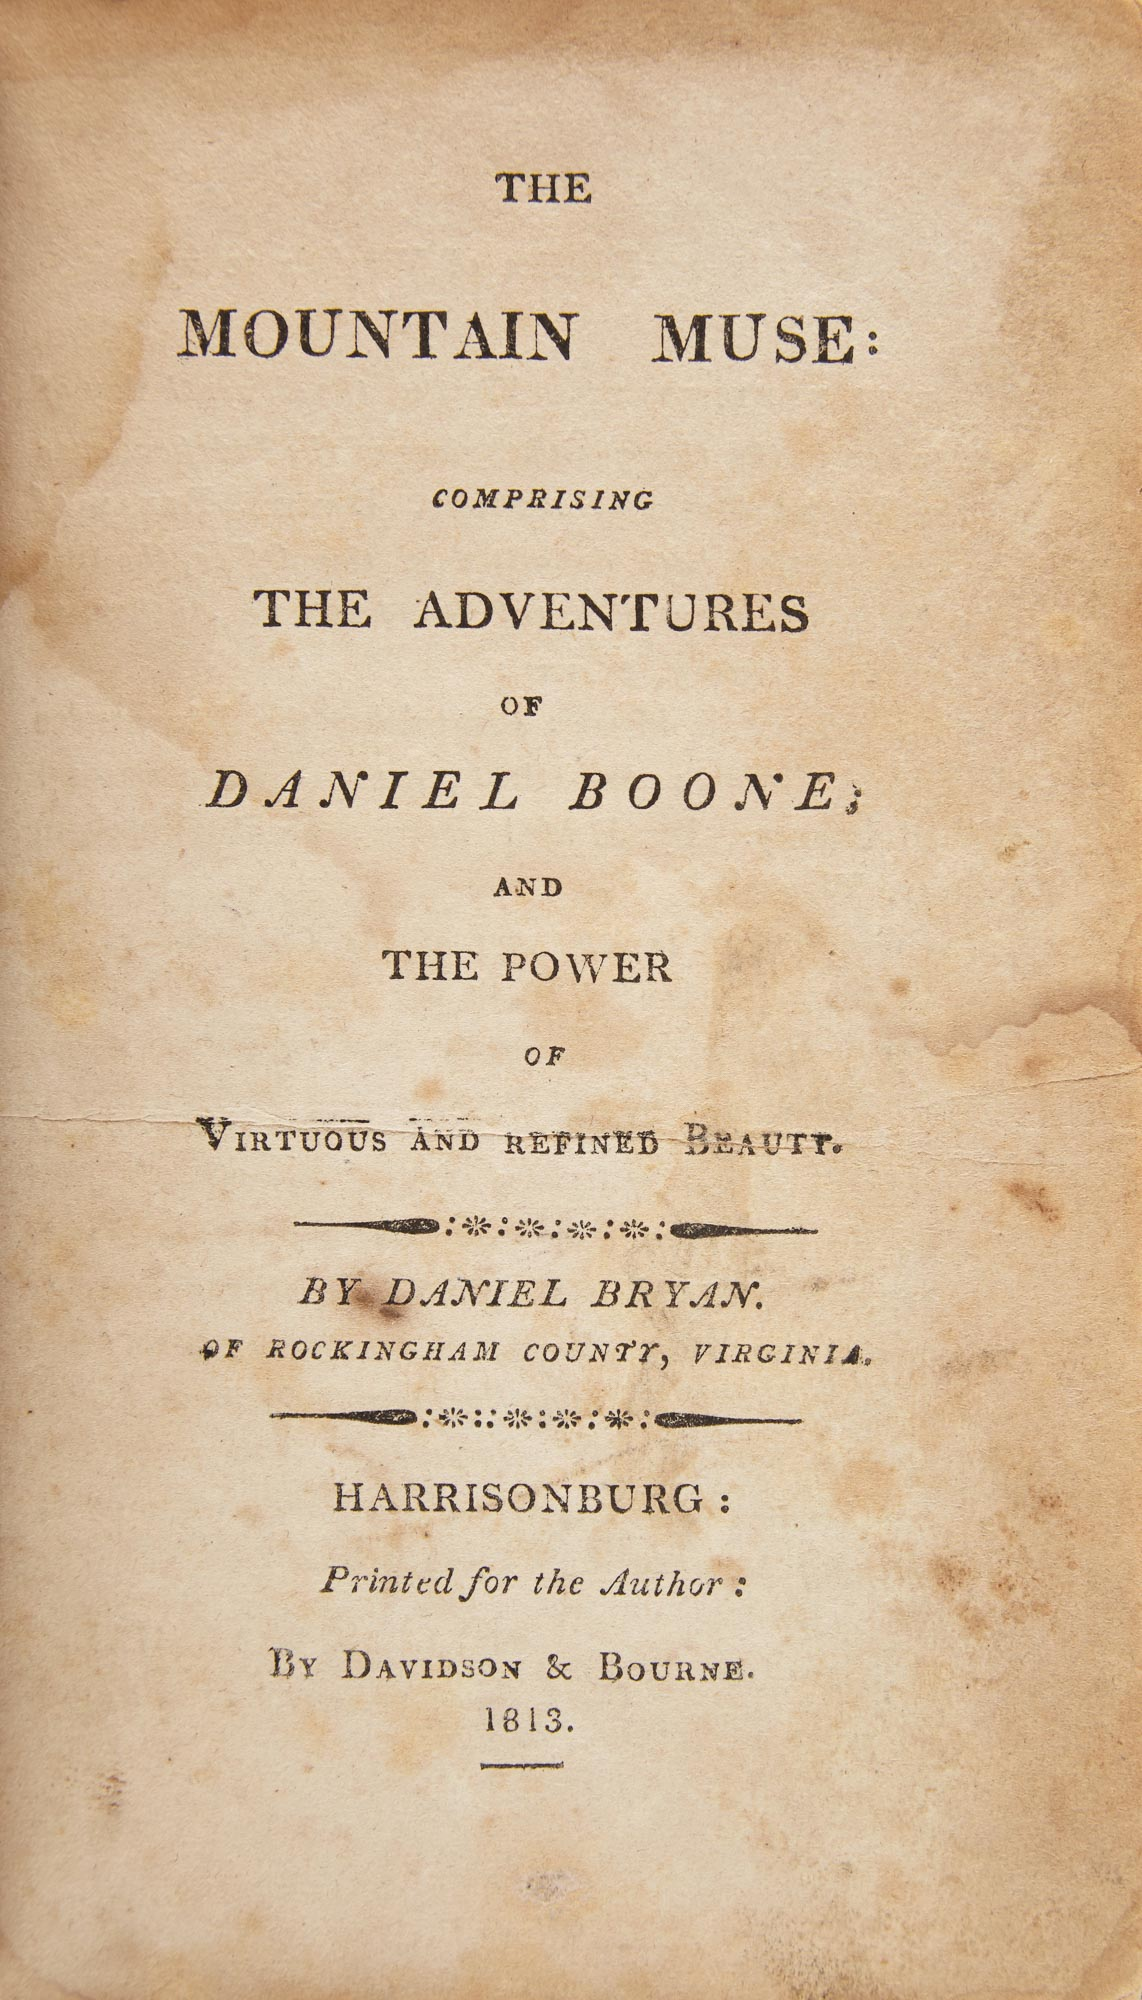 Lot image - [BOONE, DANIEL]  BRYAN, DANIEL. The Mountain Muse: Comprising the Adventures of Daniel Boone; and the Power of Virtuous and Refined Beauty.